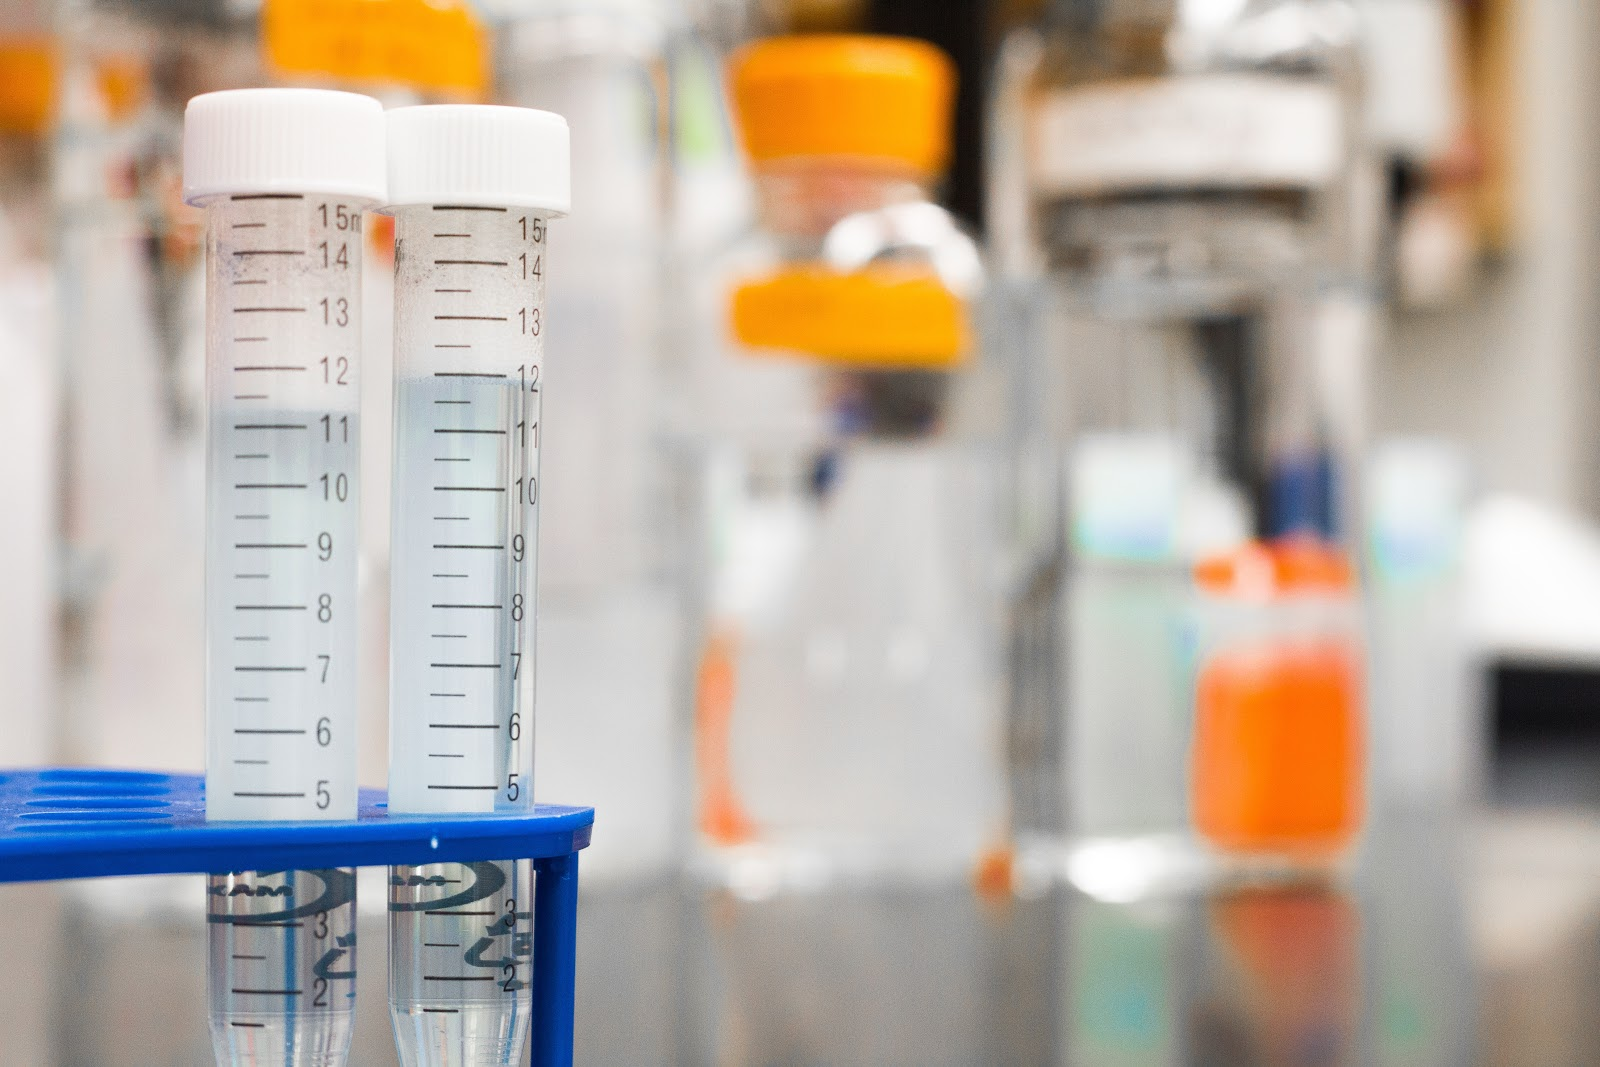 A photo of test tubes in a sperm testing facility.